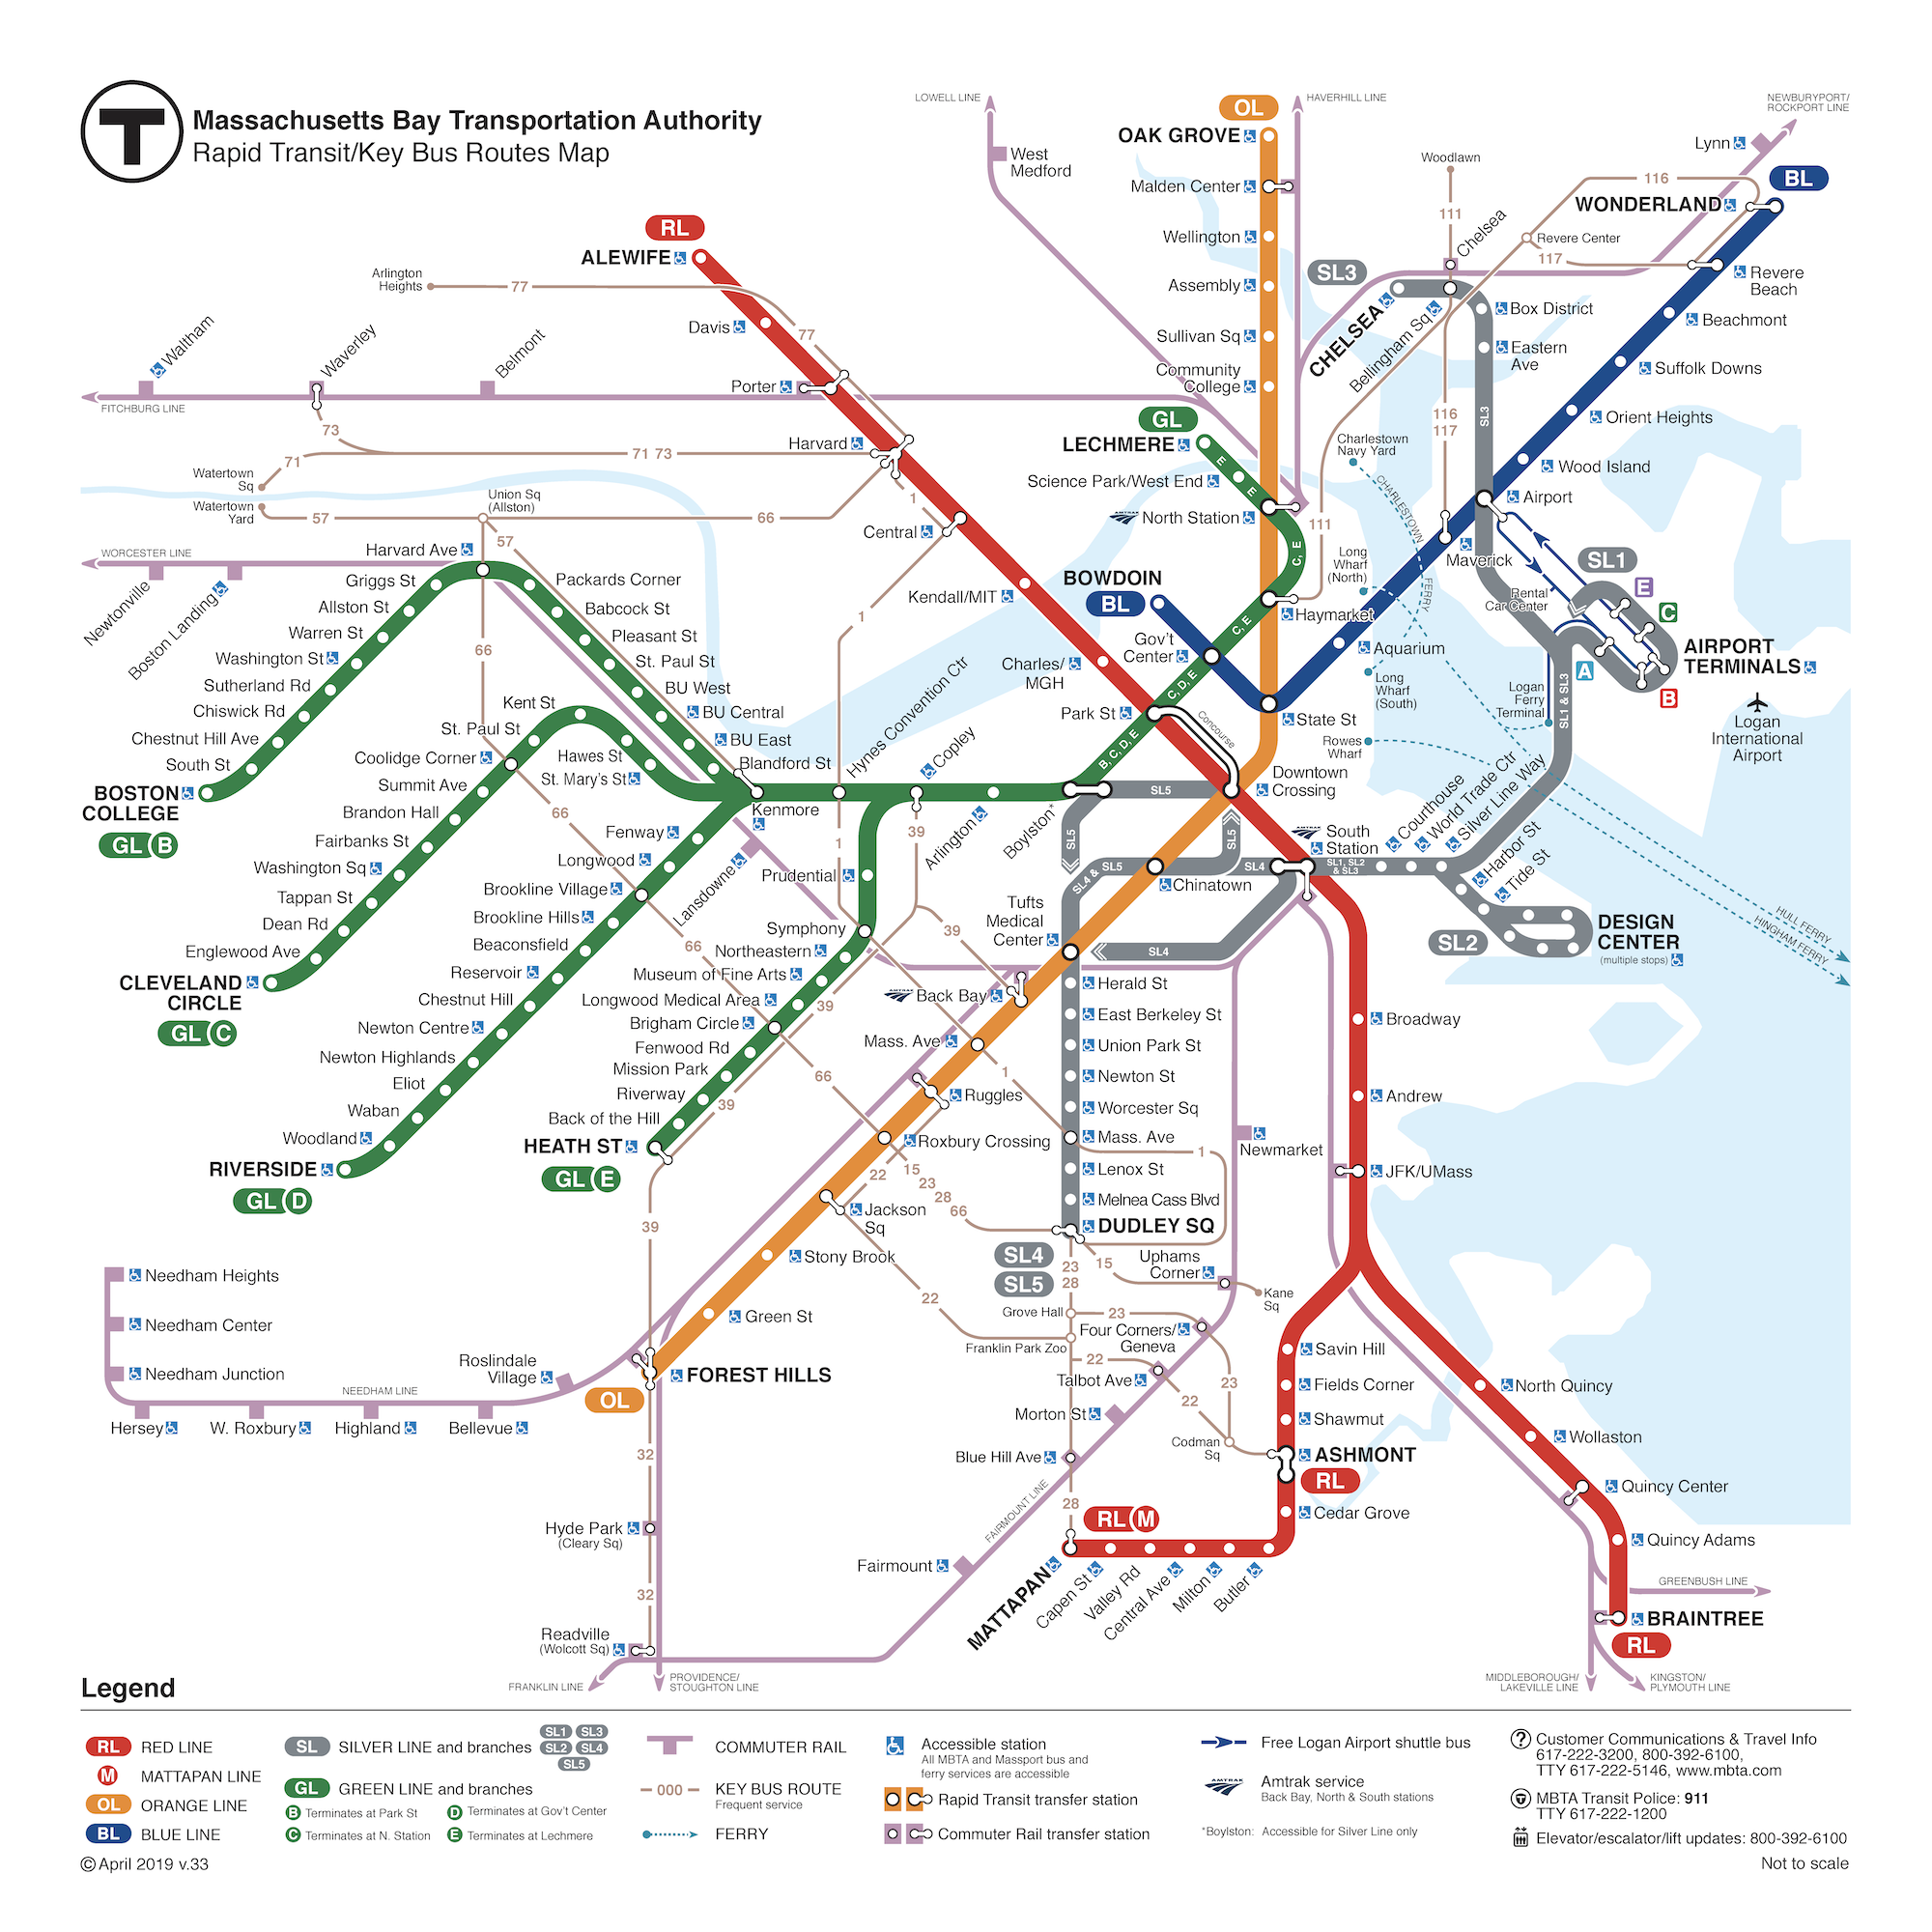 Map of all rapid transit (subway and Silver Line) and key bus routes.